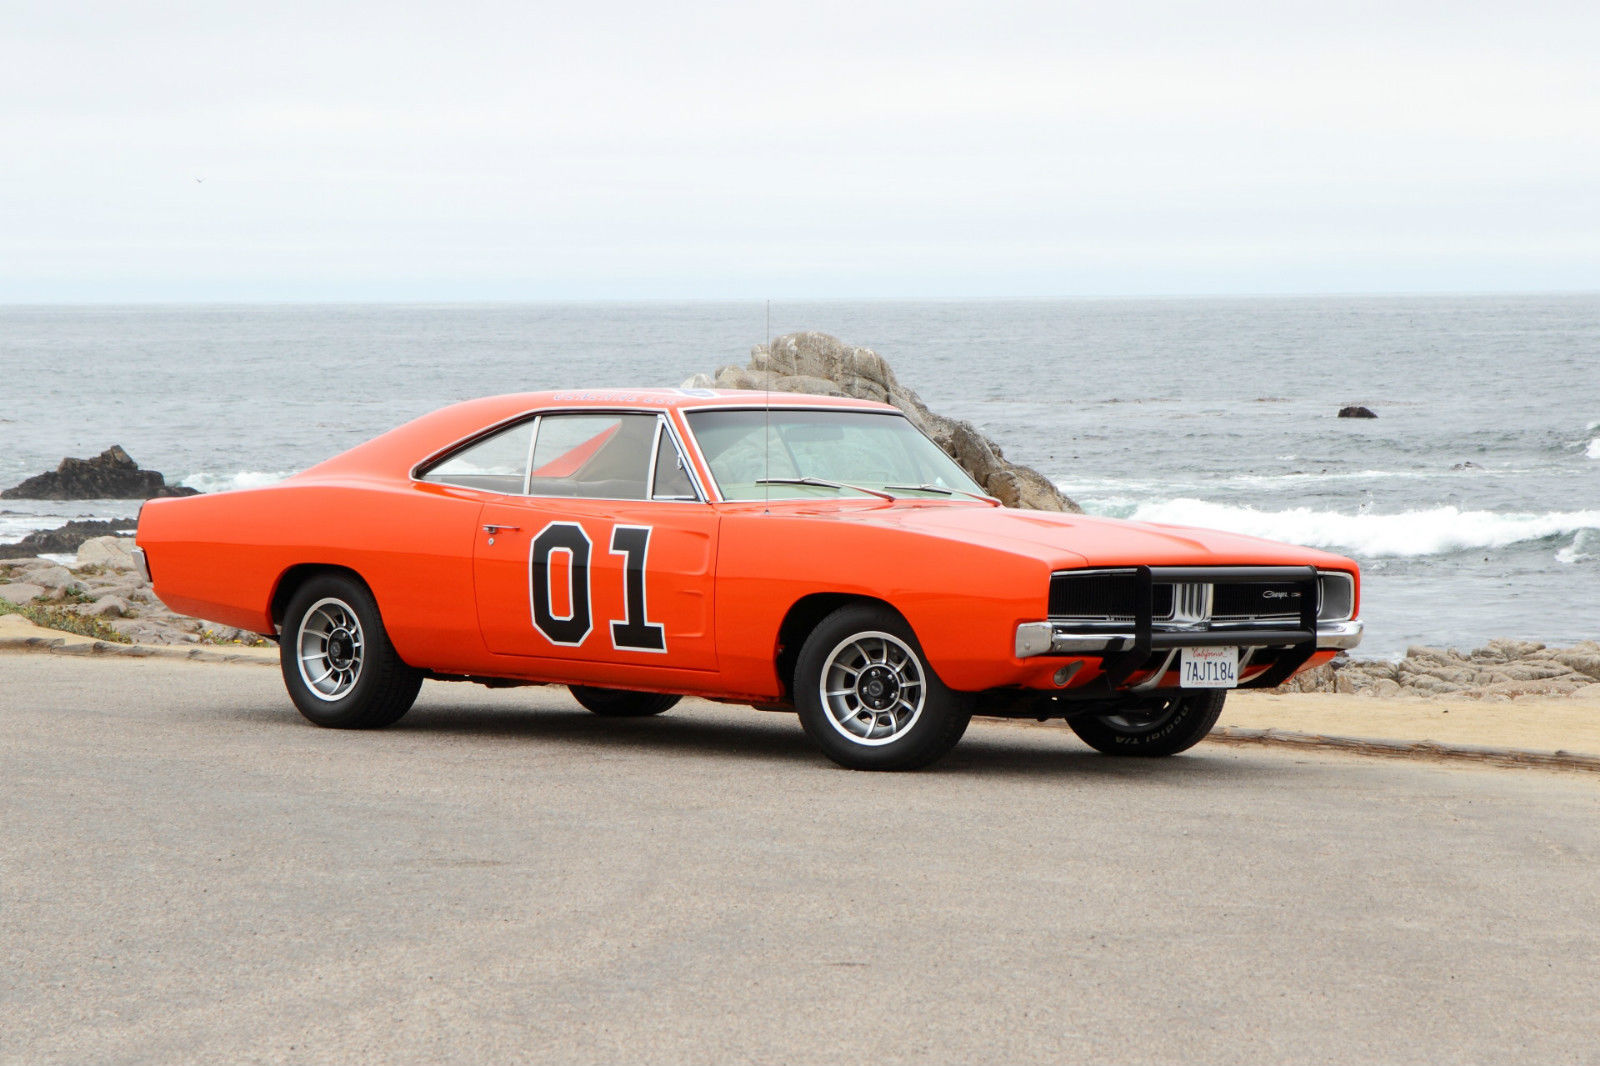 1969 dodge charger general lee dukes of hazzard for sale or for rent. Black Bedroom Furniture Sets. Home Design Ideas